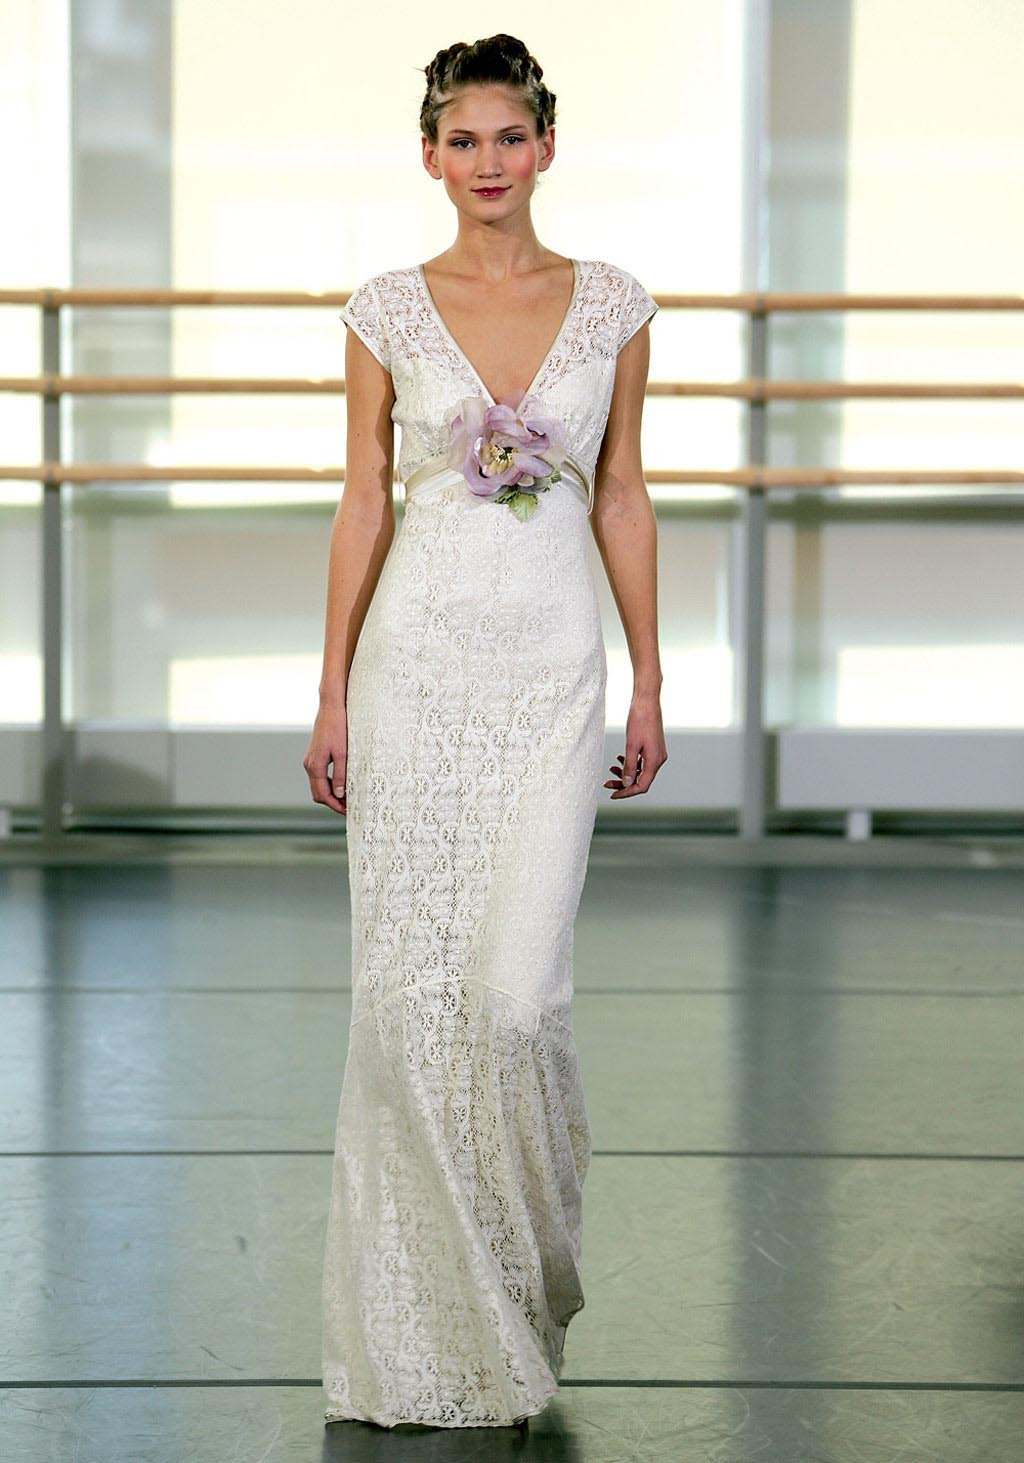 Crochet-yolanda-wedding-dress-by-claire-pettibone.full